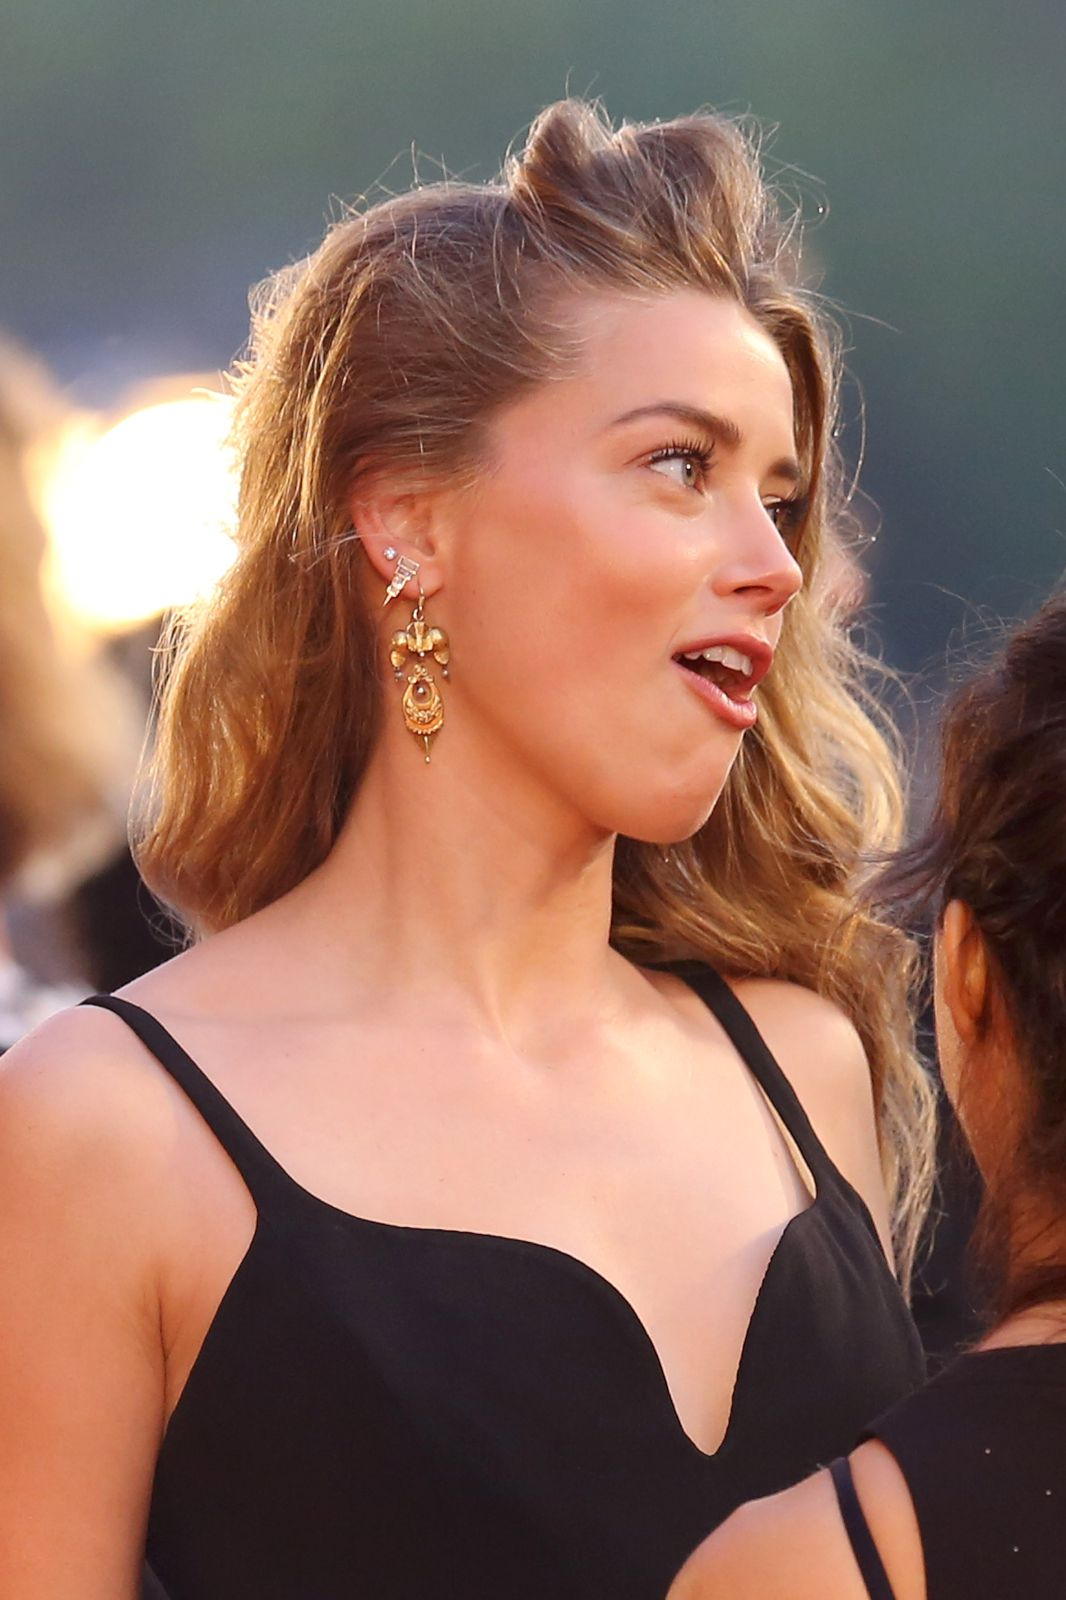 Thinspiration pictures of Celebs: Amber Heard